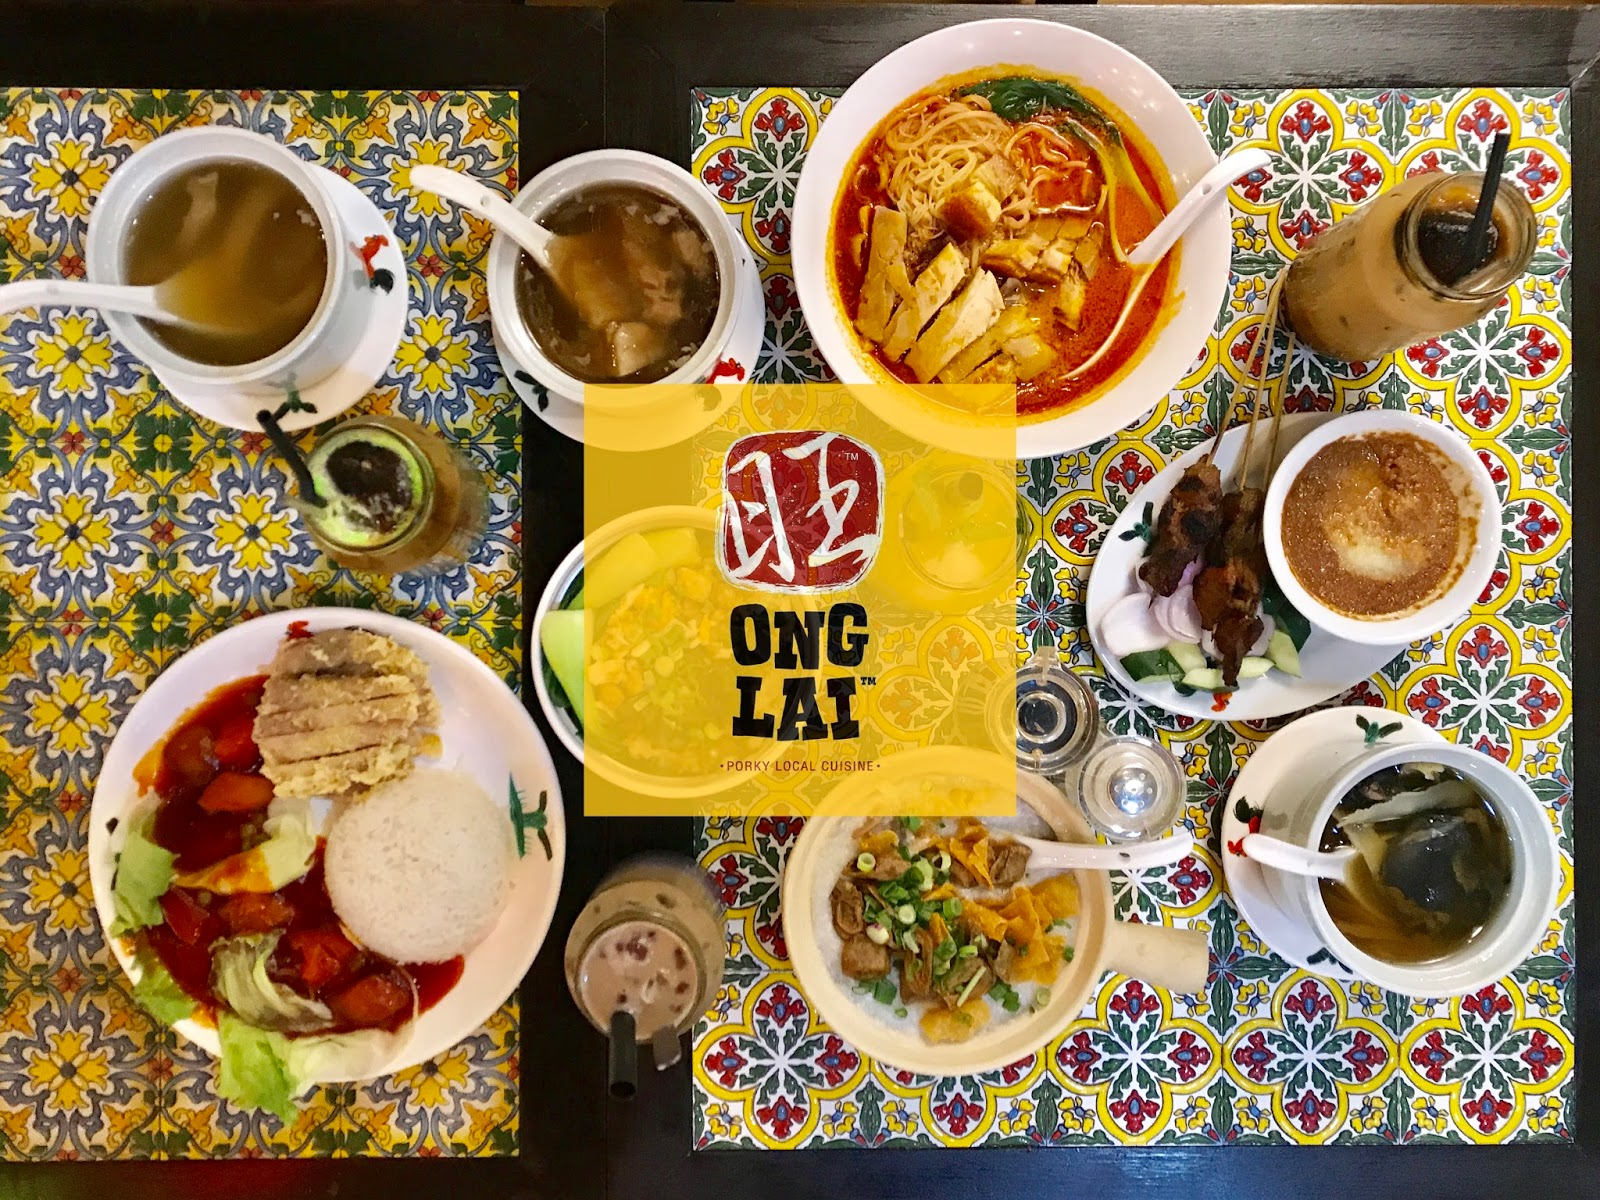 [Food Review] (Non-Halal) Malaysian Favorite Cuisine Ong Lai @ DA MEN Mall